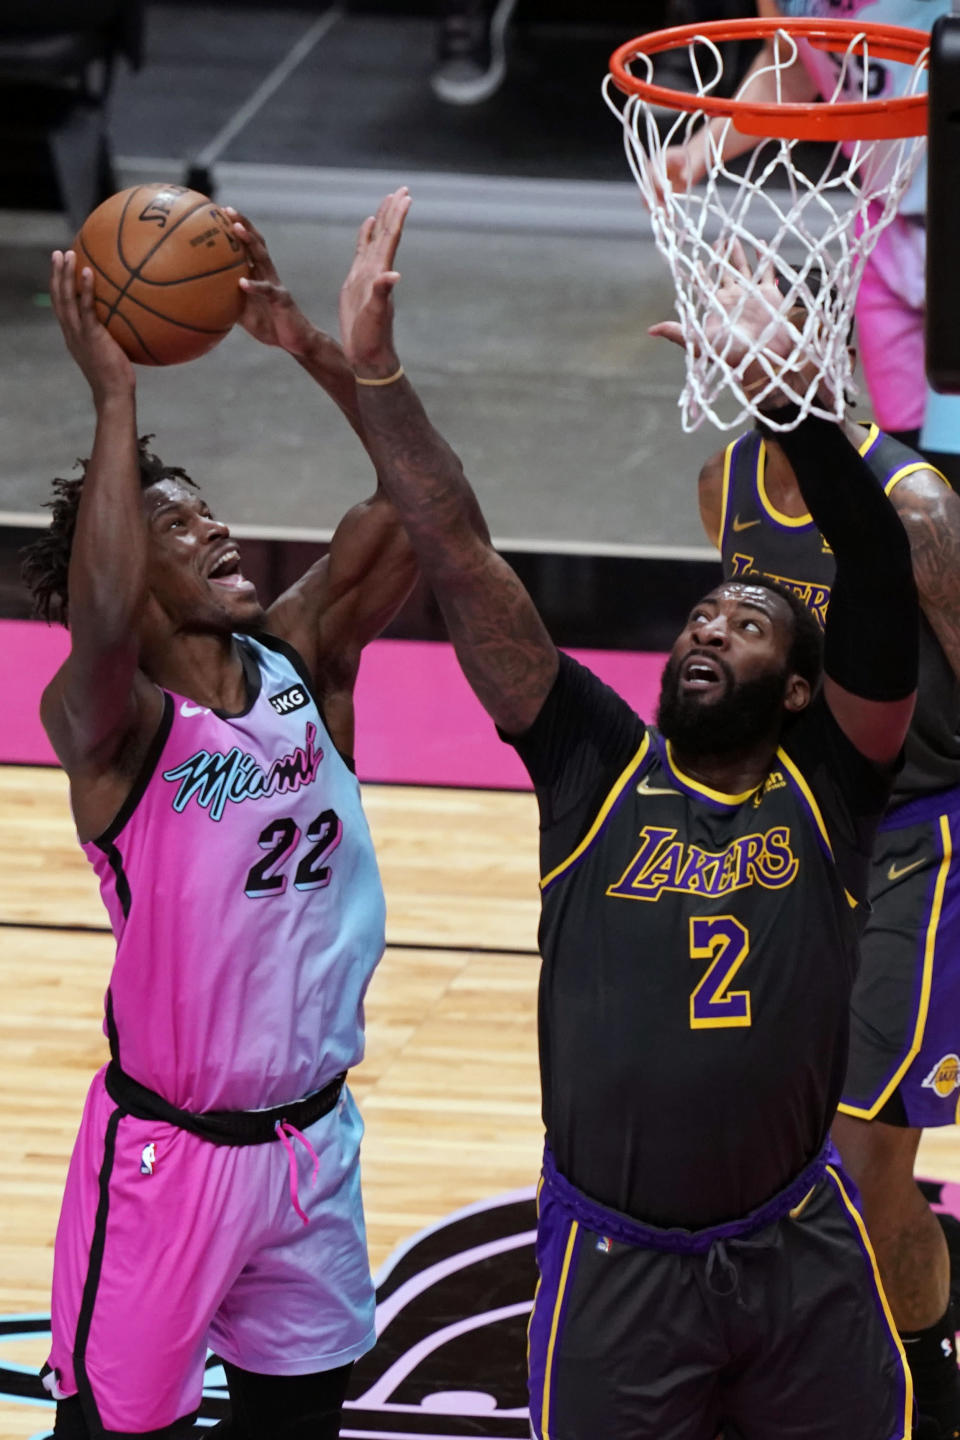 Miami Heat forward Jimmy Butler (22) drives to the basket as Los Angeles Lakers center Andre Drummond (2) defends, during the second half of an NBA basketball game, Thursday, April 8, 2021, in Miami. (AP Photo/Marta Lavandier)